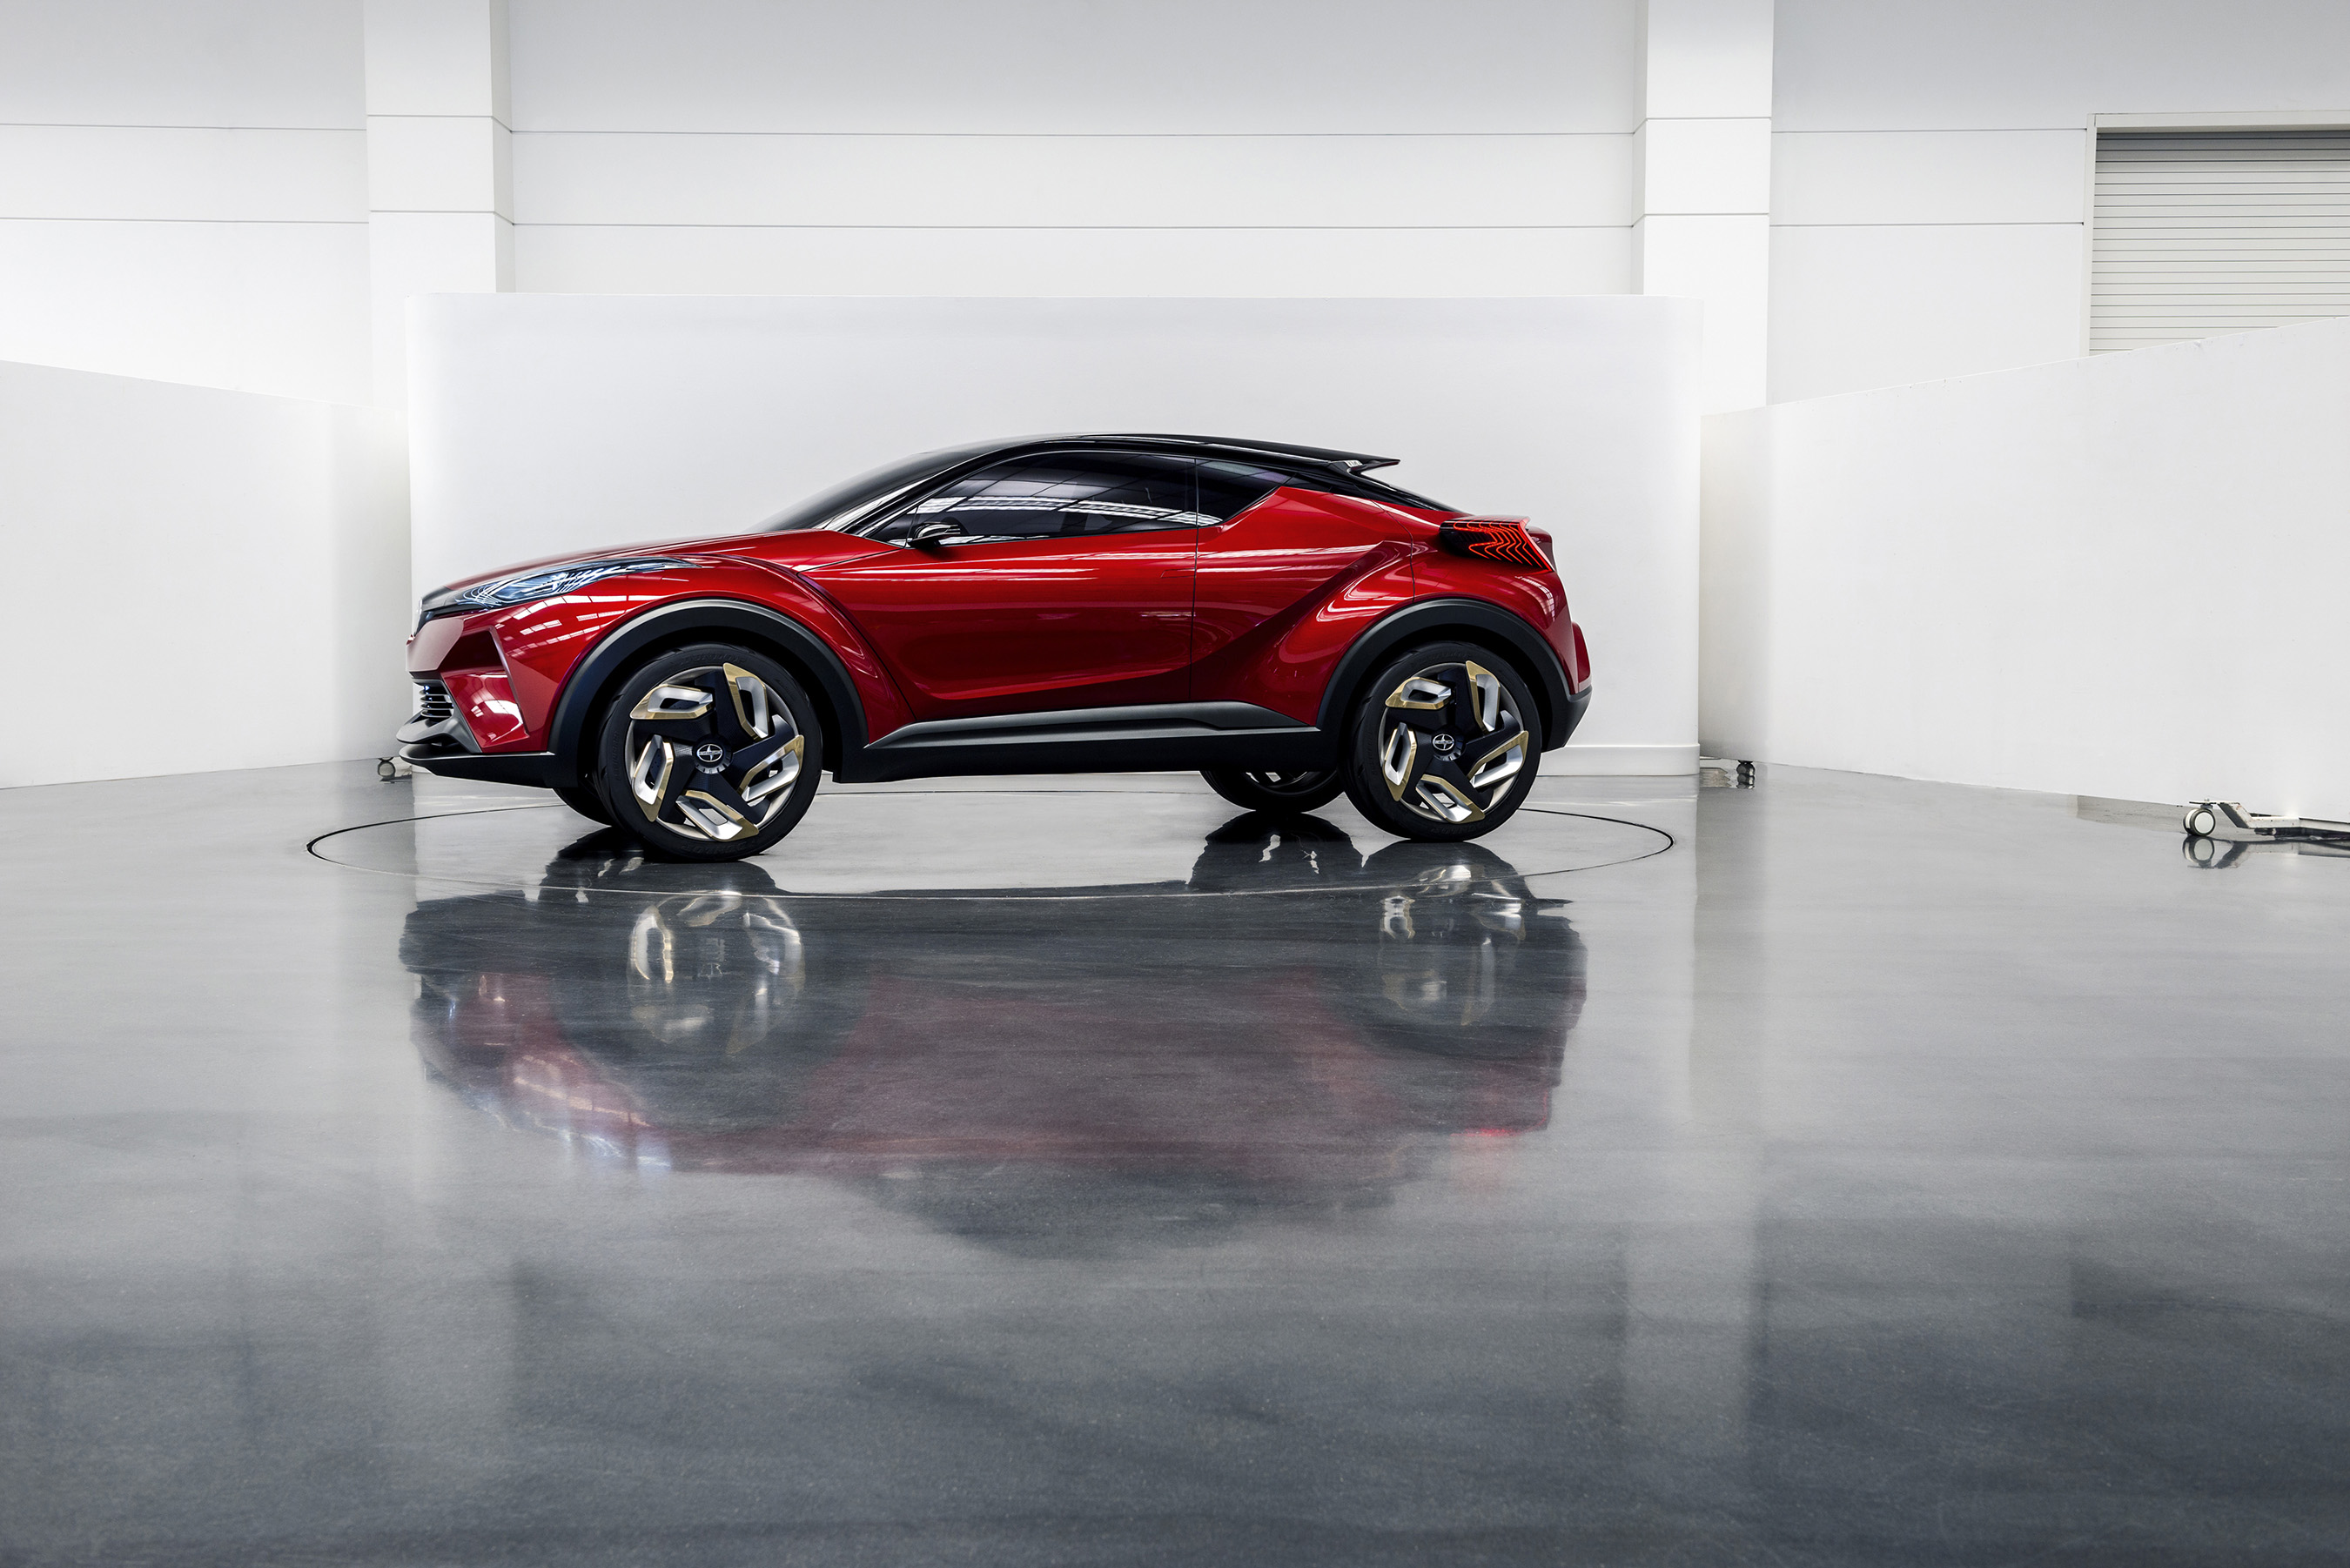 Scion C-HR Concept Urban Lifestyle Vehicle